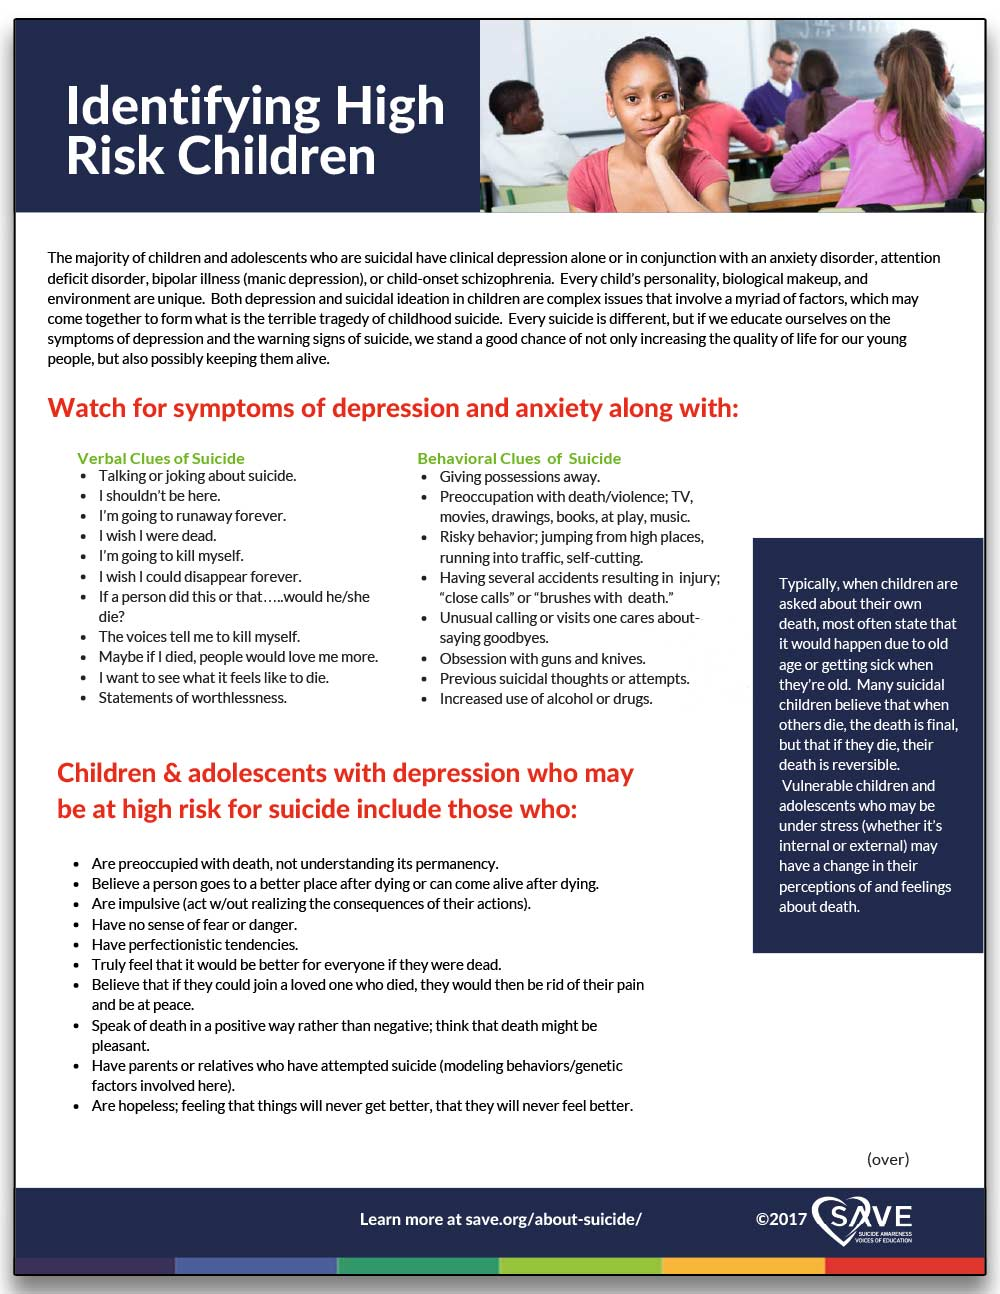 information sheet about identifying suicide in high risk children